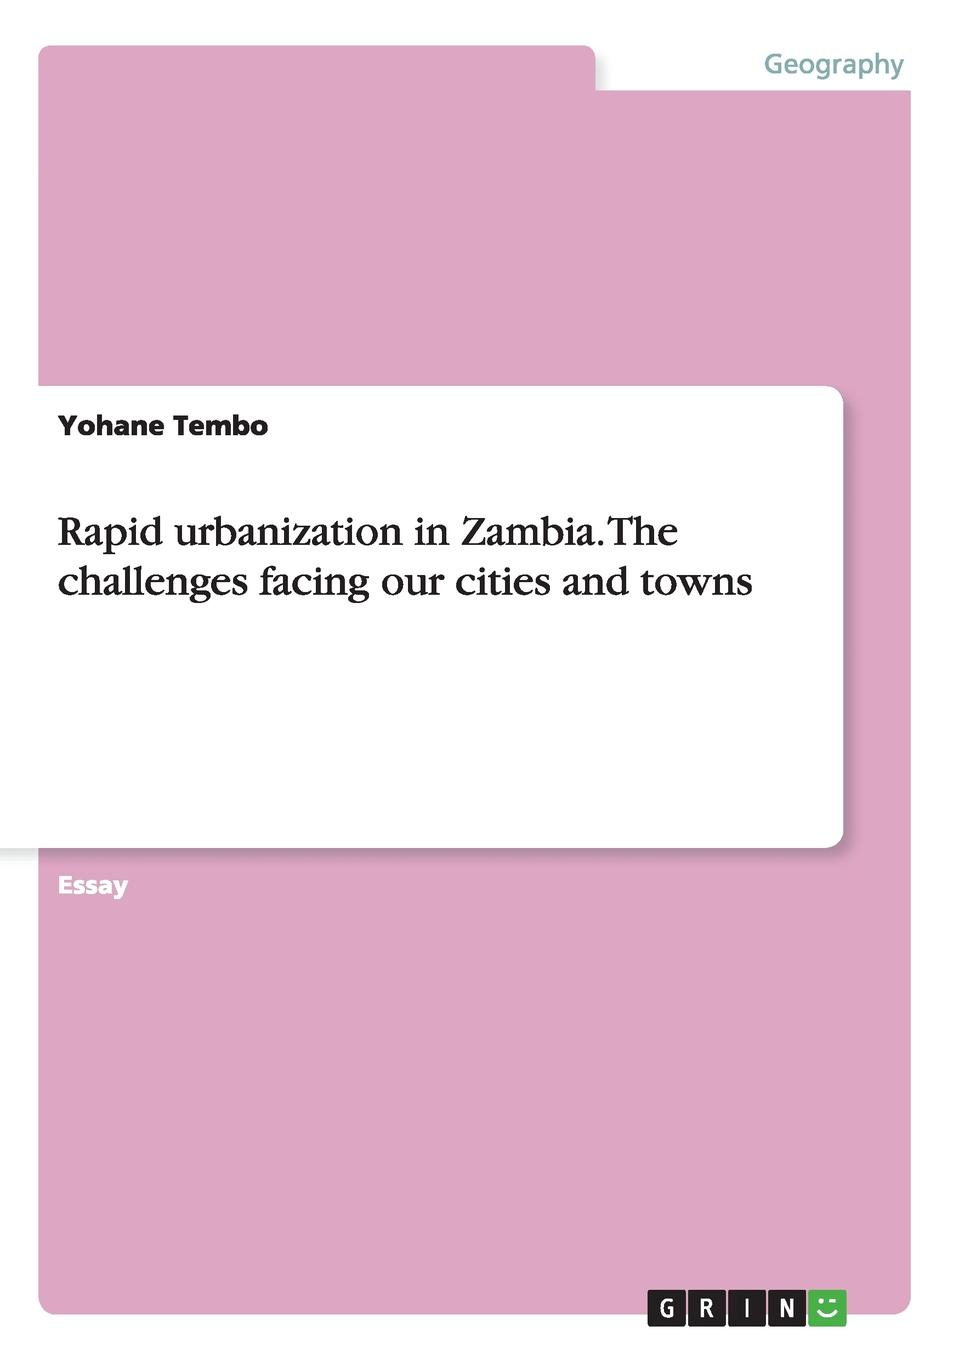 лучшая цена Yohane Tembo Rapid urbanization in Zambia. The challenges facing our cities and towns